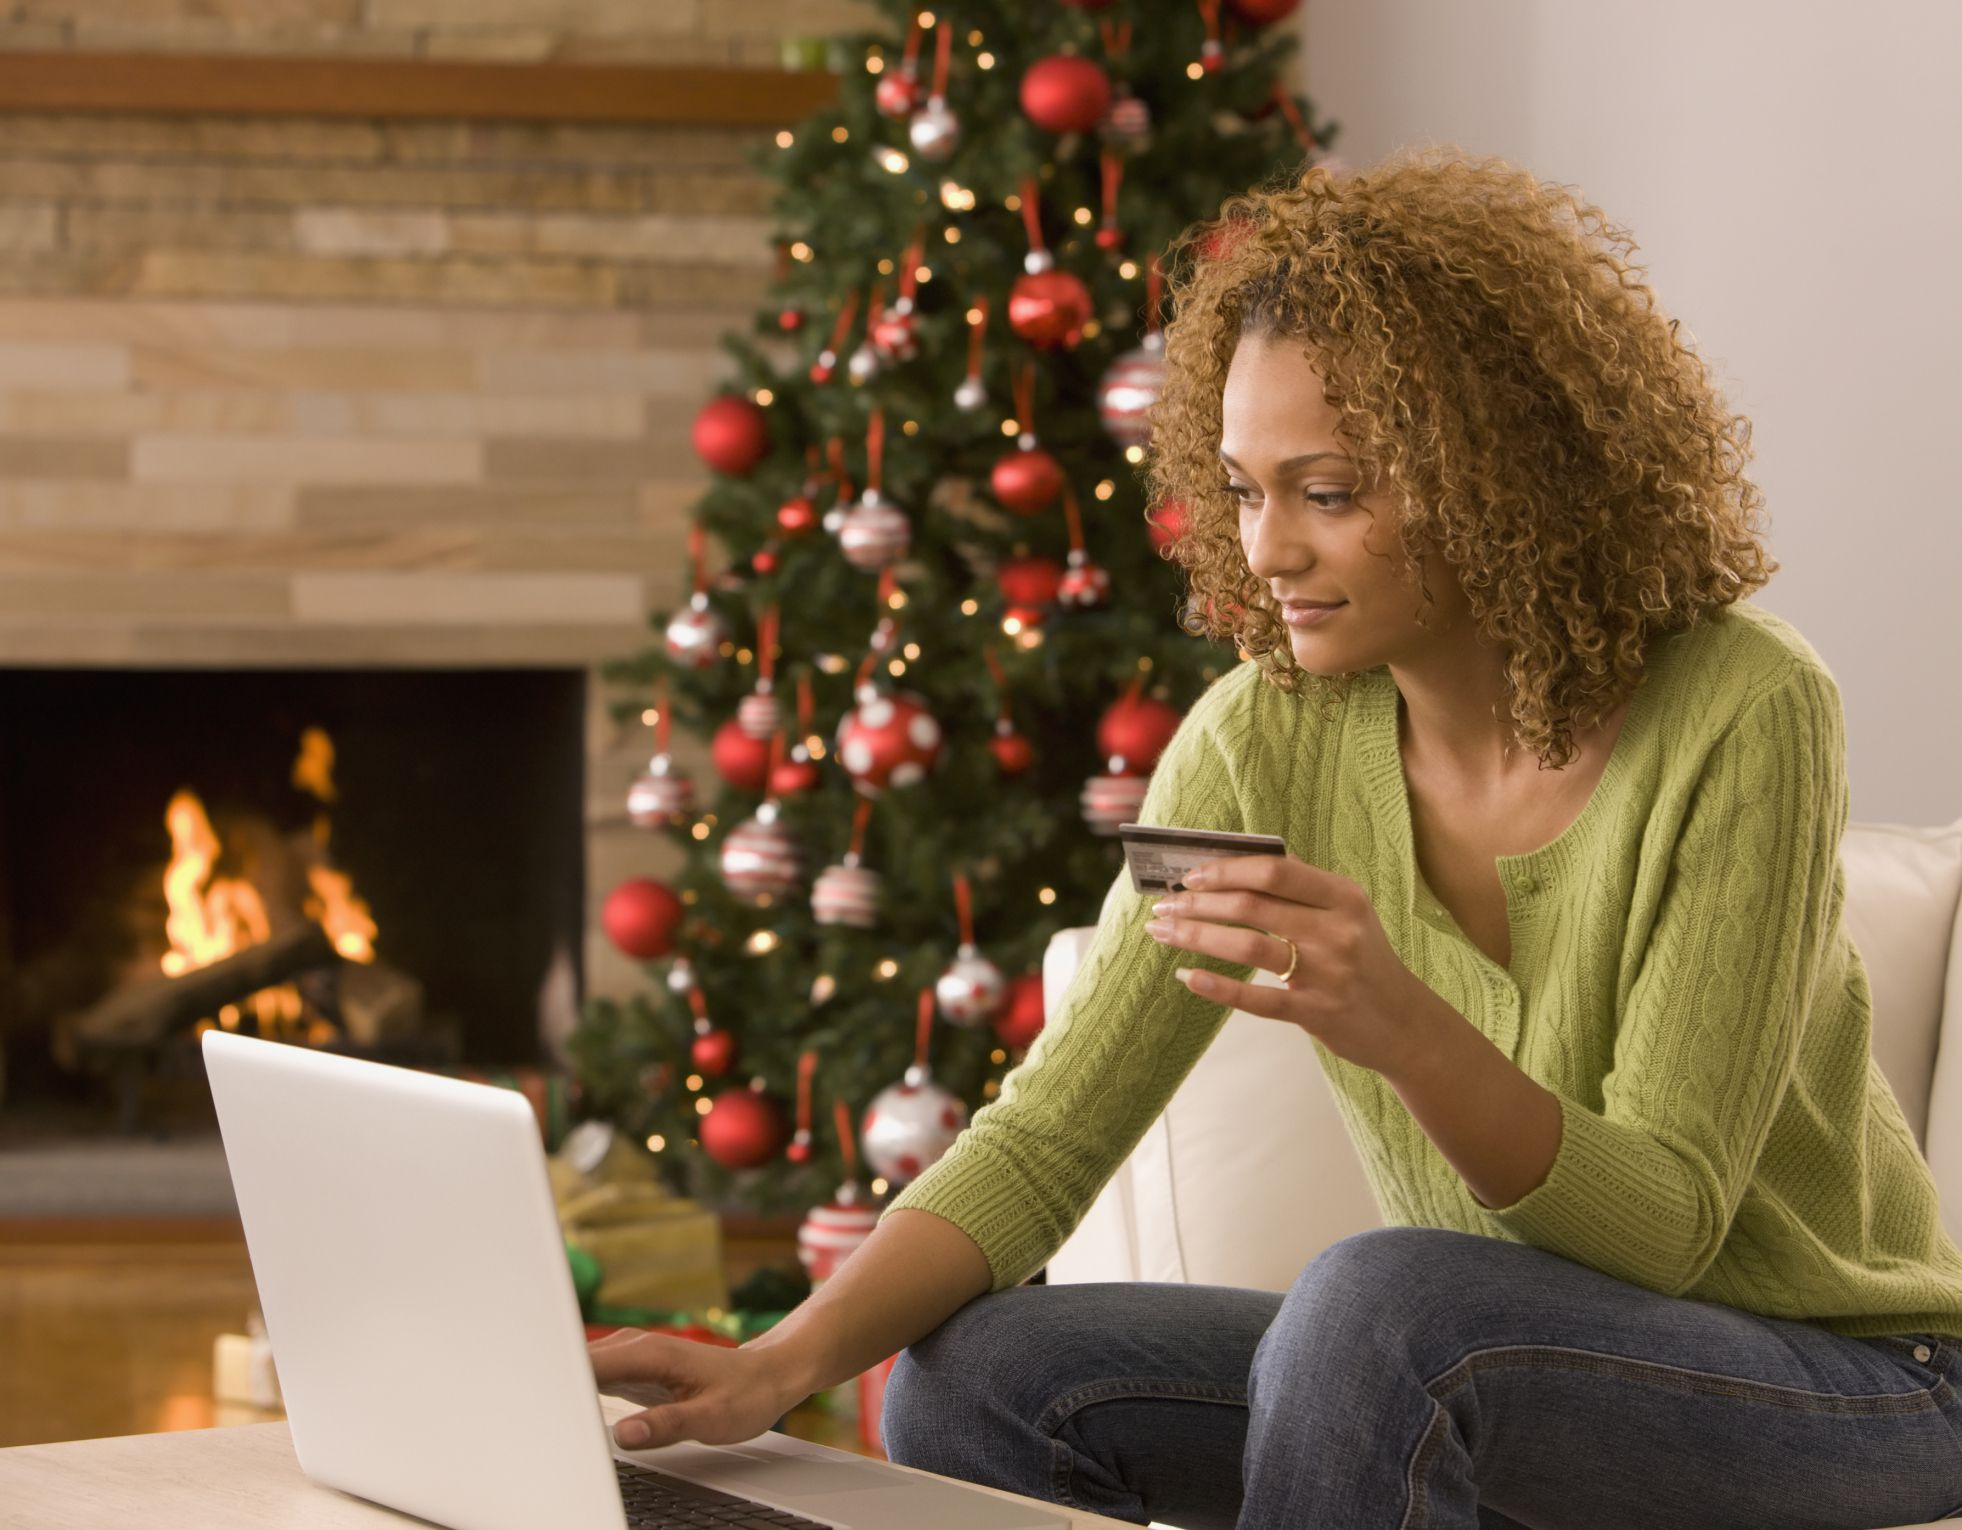 5 Ways to Curb Christmas Spending